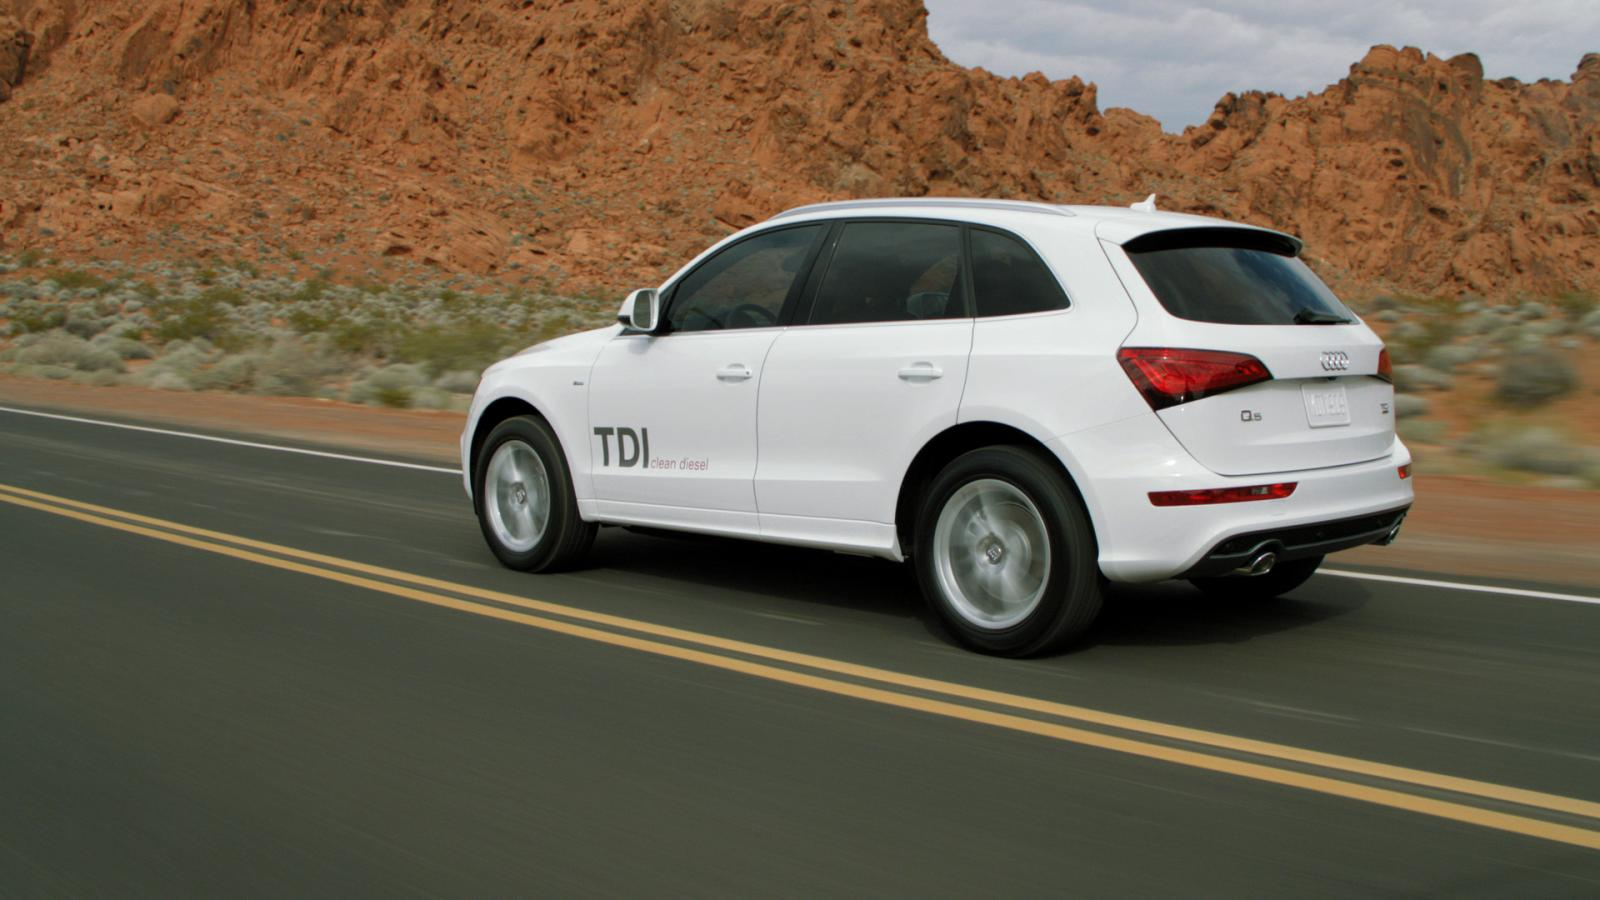 q5 Audi to introduce four new TDI clean diesel models to the U.S. Market at the L.A. Auto Show